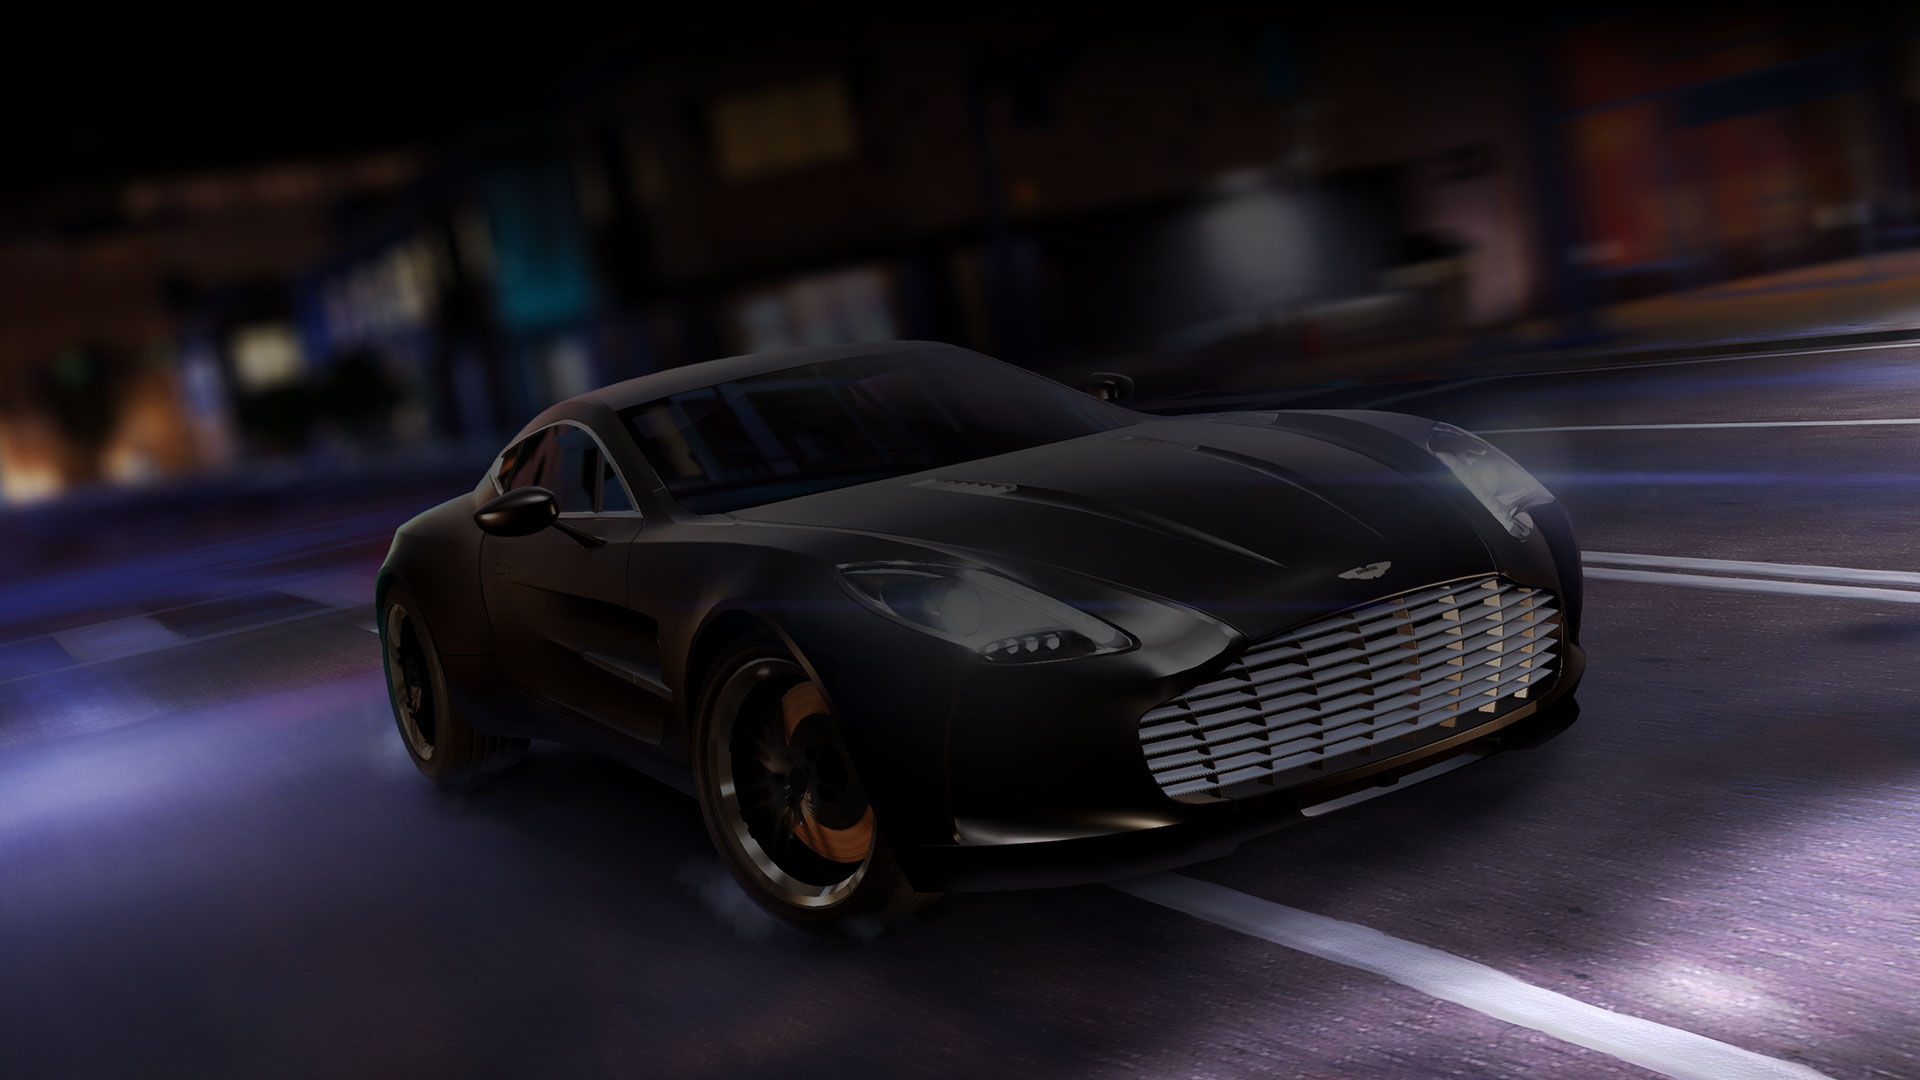 Black Aston Martin on a street